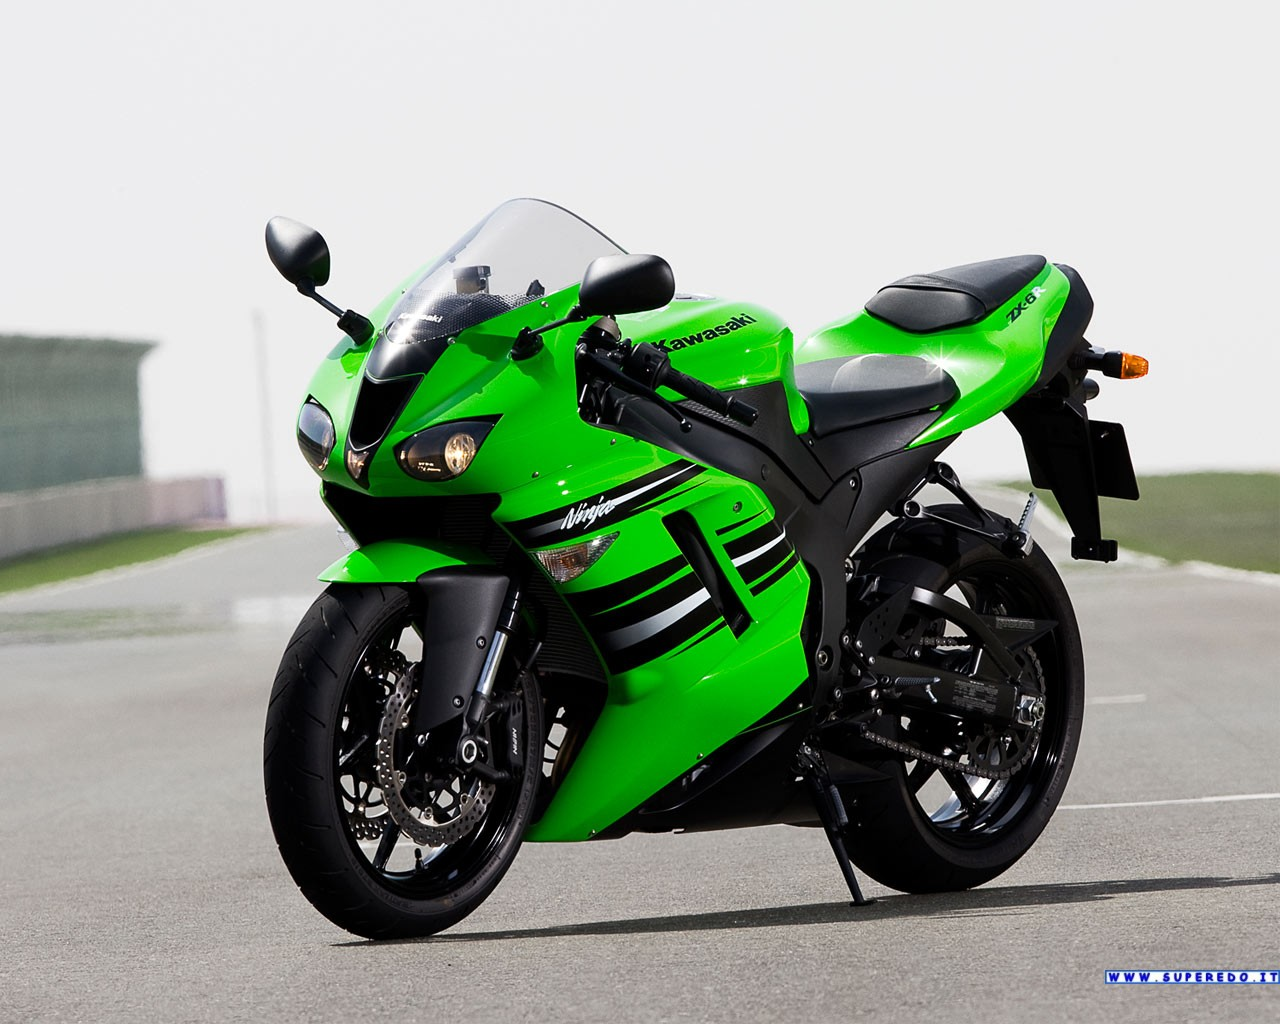 2008 kawasaki ninja zx 6r moto zombdrive com. Black Bedroom Furniture Sets. Home Design Ideas